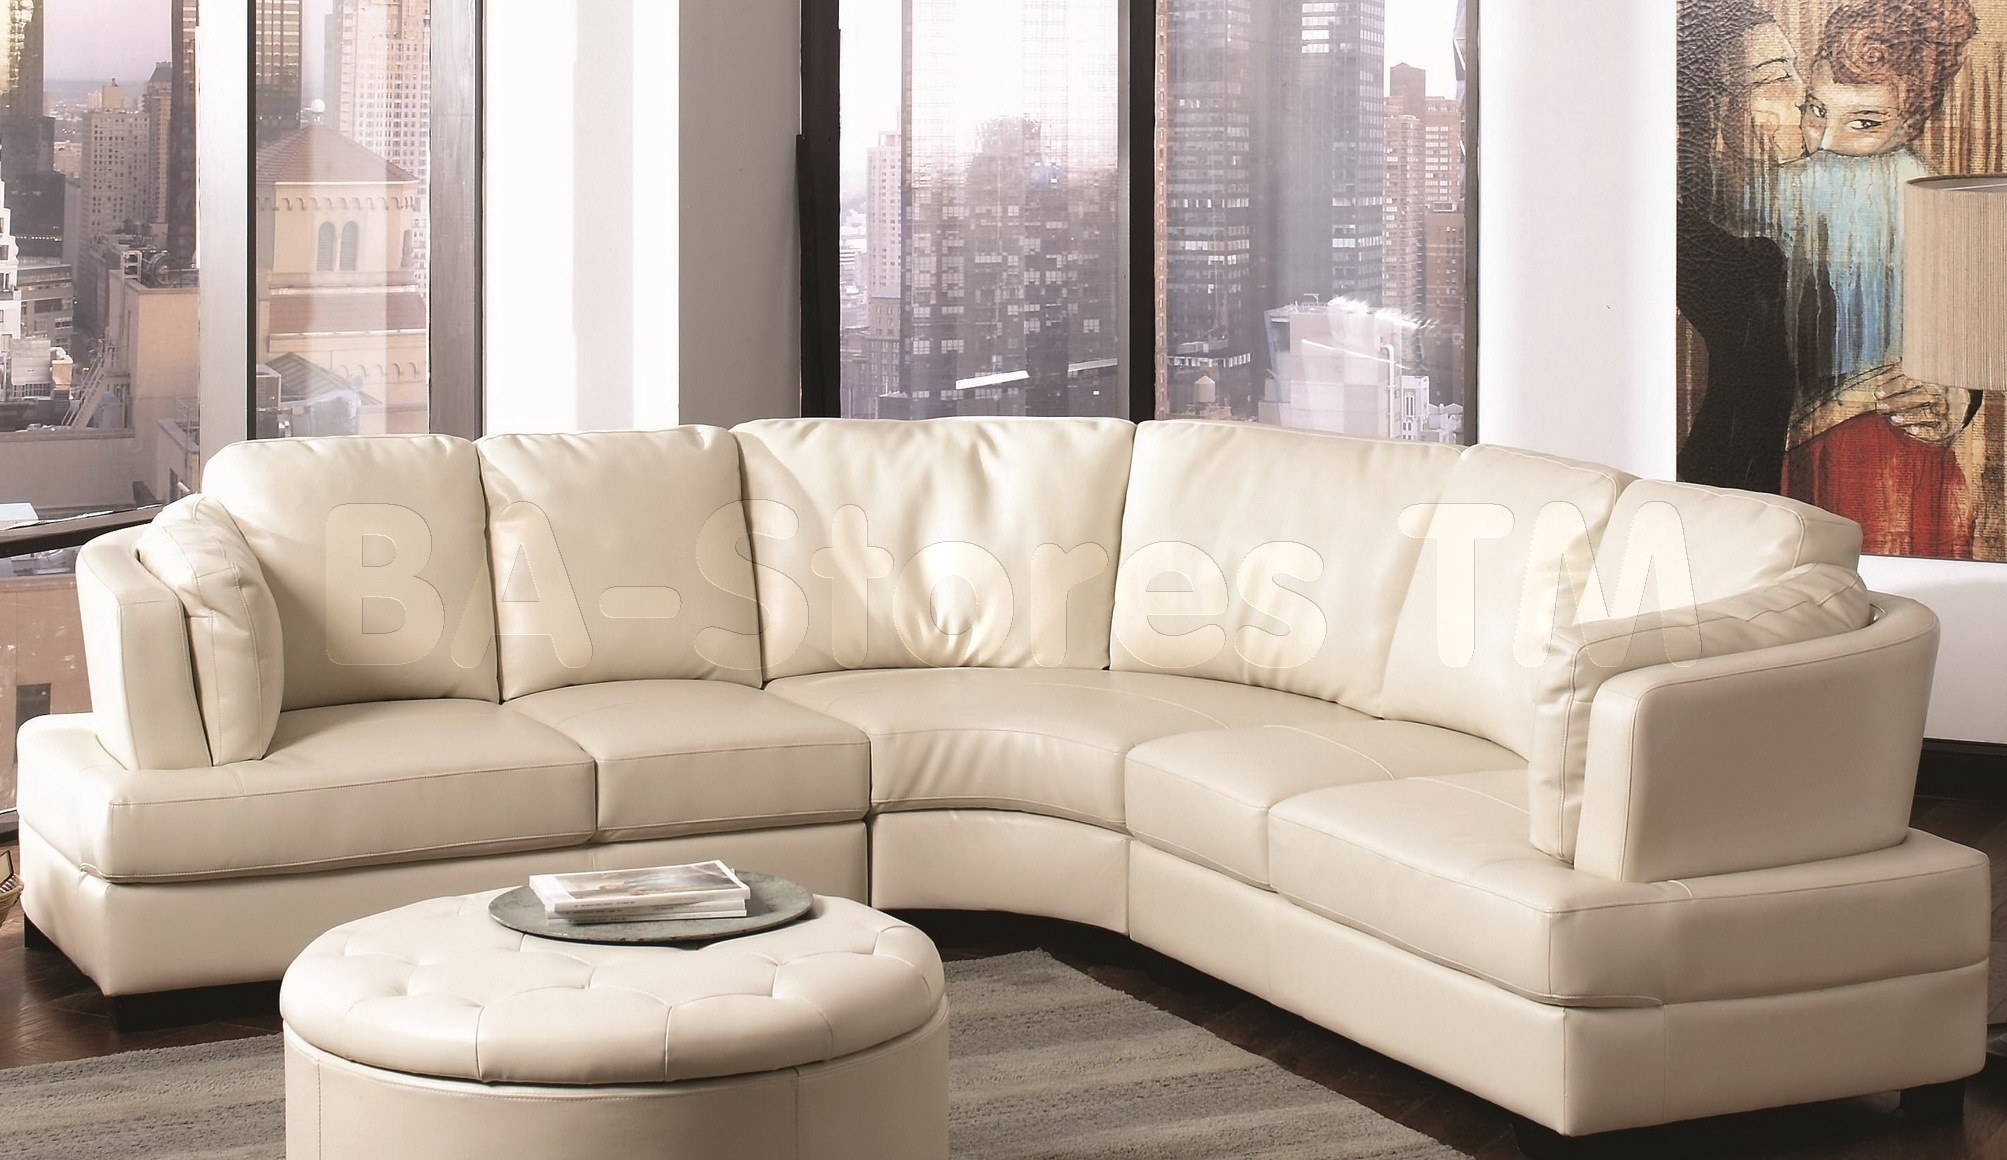 Curved Leather Sectional Sofa • Sectional Sofa Pertaining To Round Sectional Sofas (View 9 of 10)